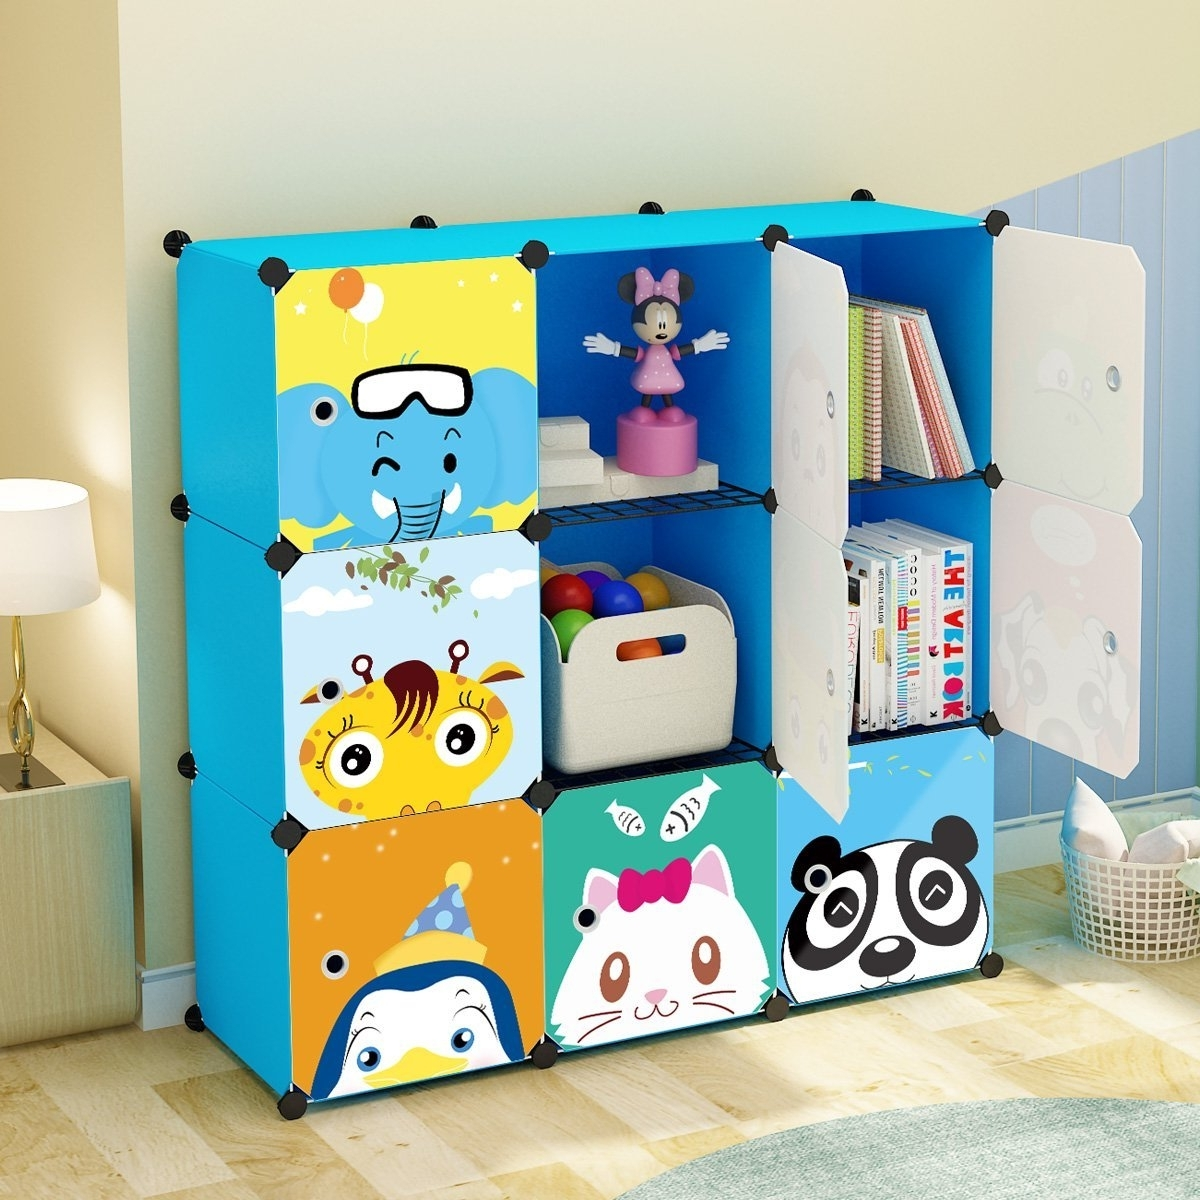 Newest Kids' Bookcases, Cabinets & Shelves (View 15 of 15)